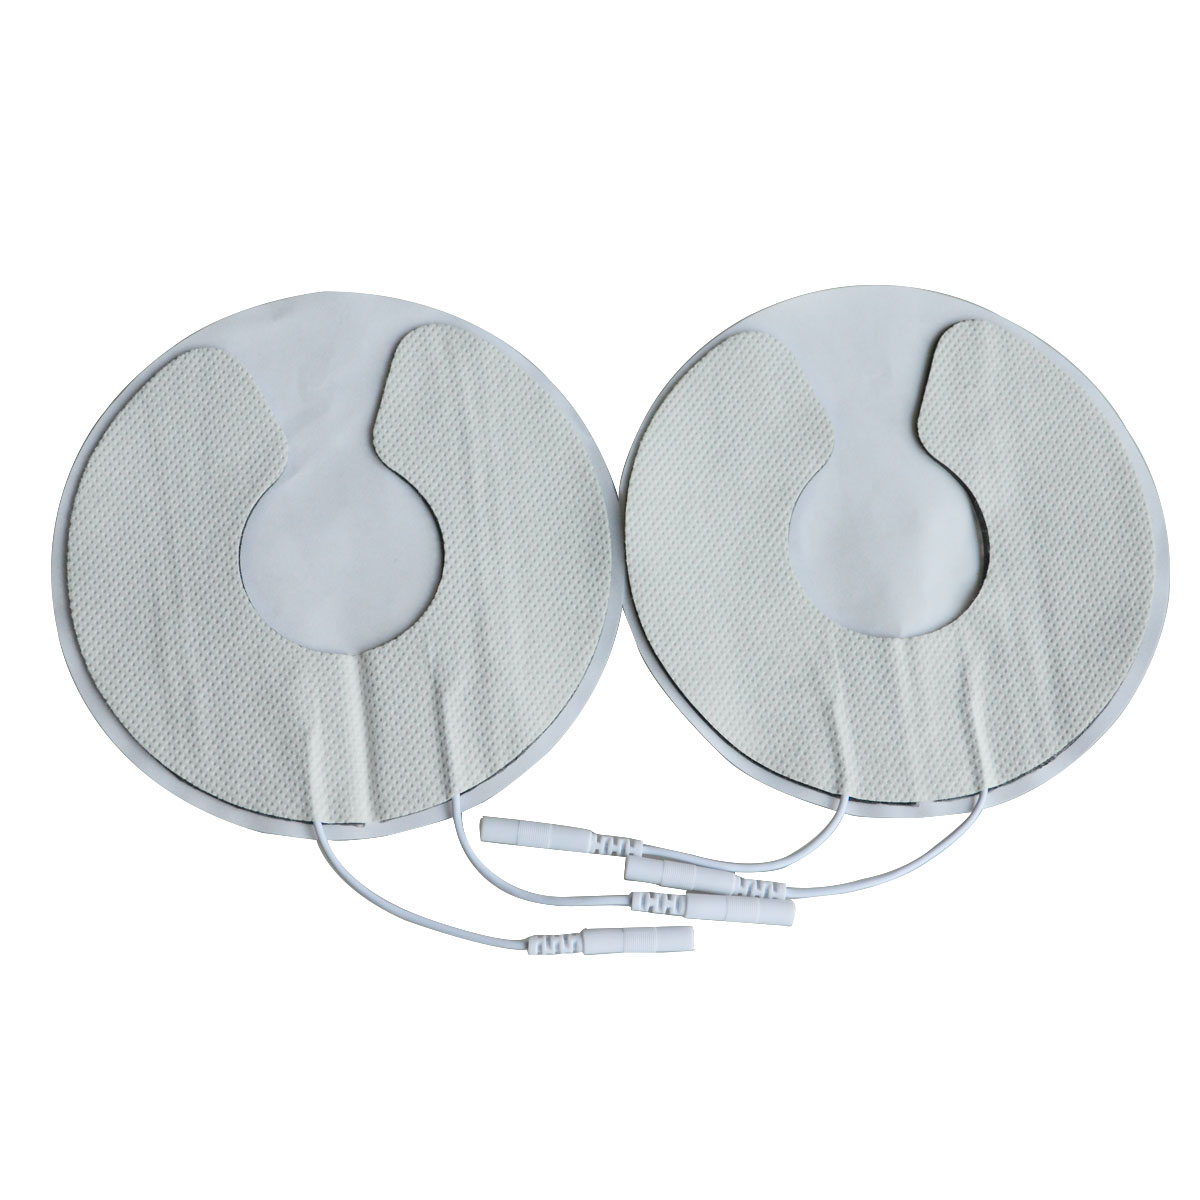 5Pairs/Lot Breast Electrode Massage Pads Chest Electrical Massager Patches Self Adhesive With Pin 2.0mm Muscle Stimulator цена